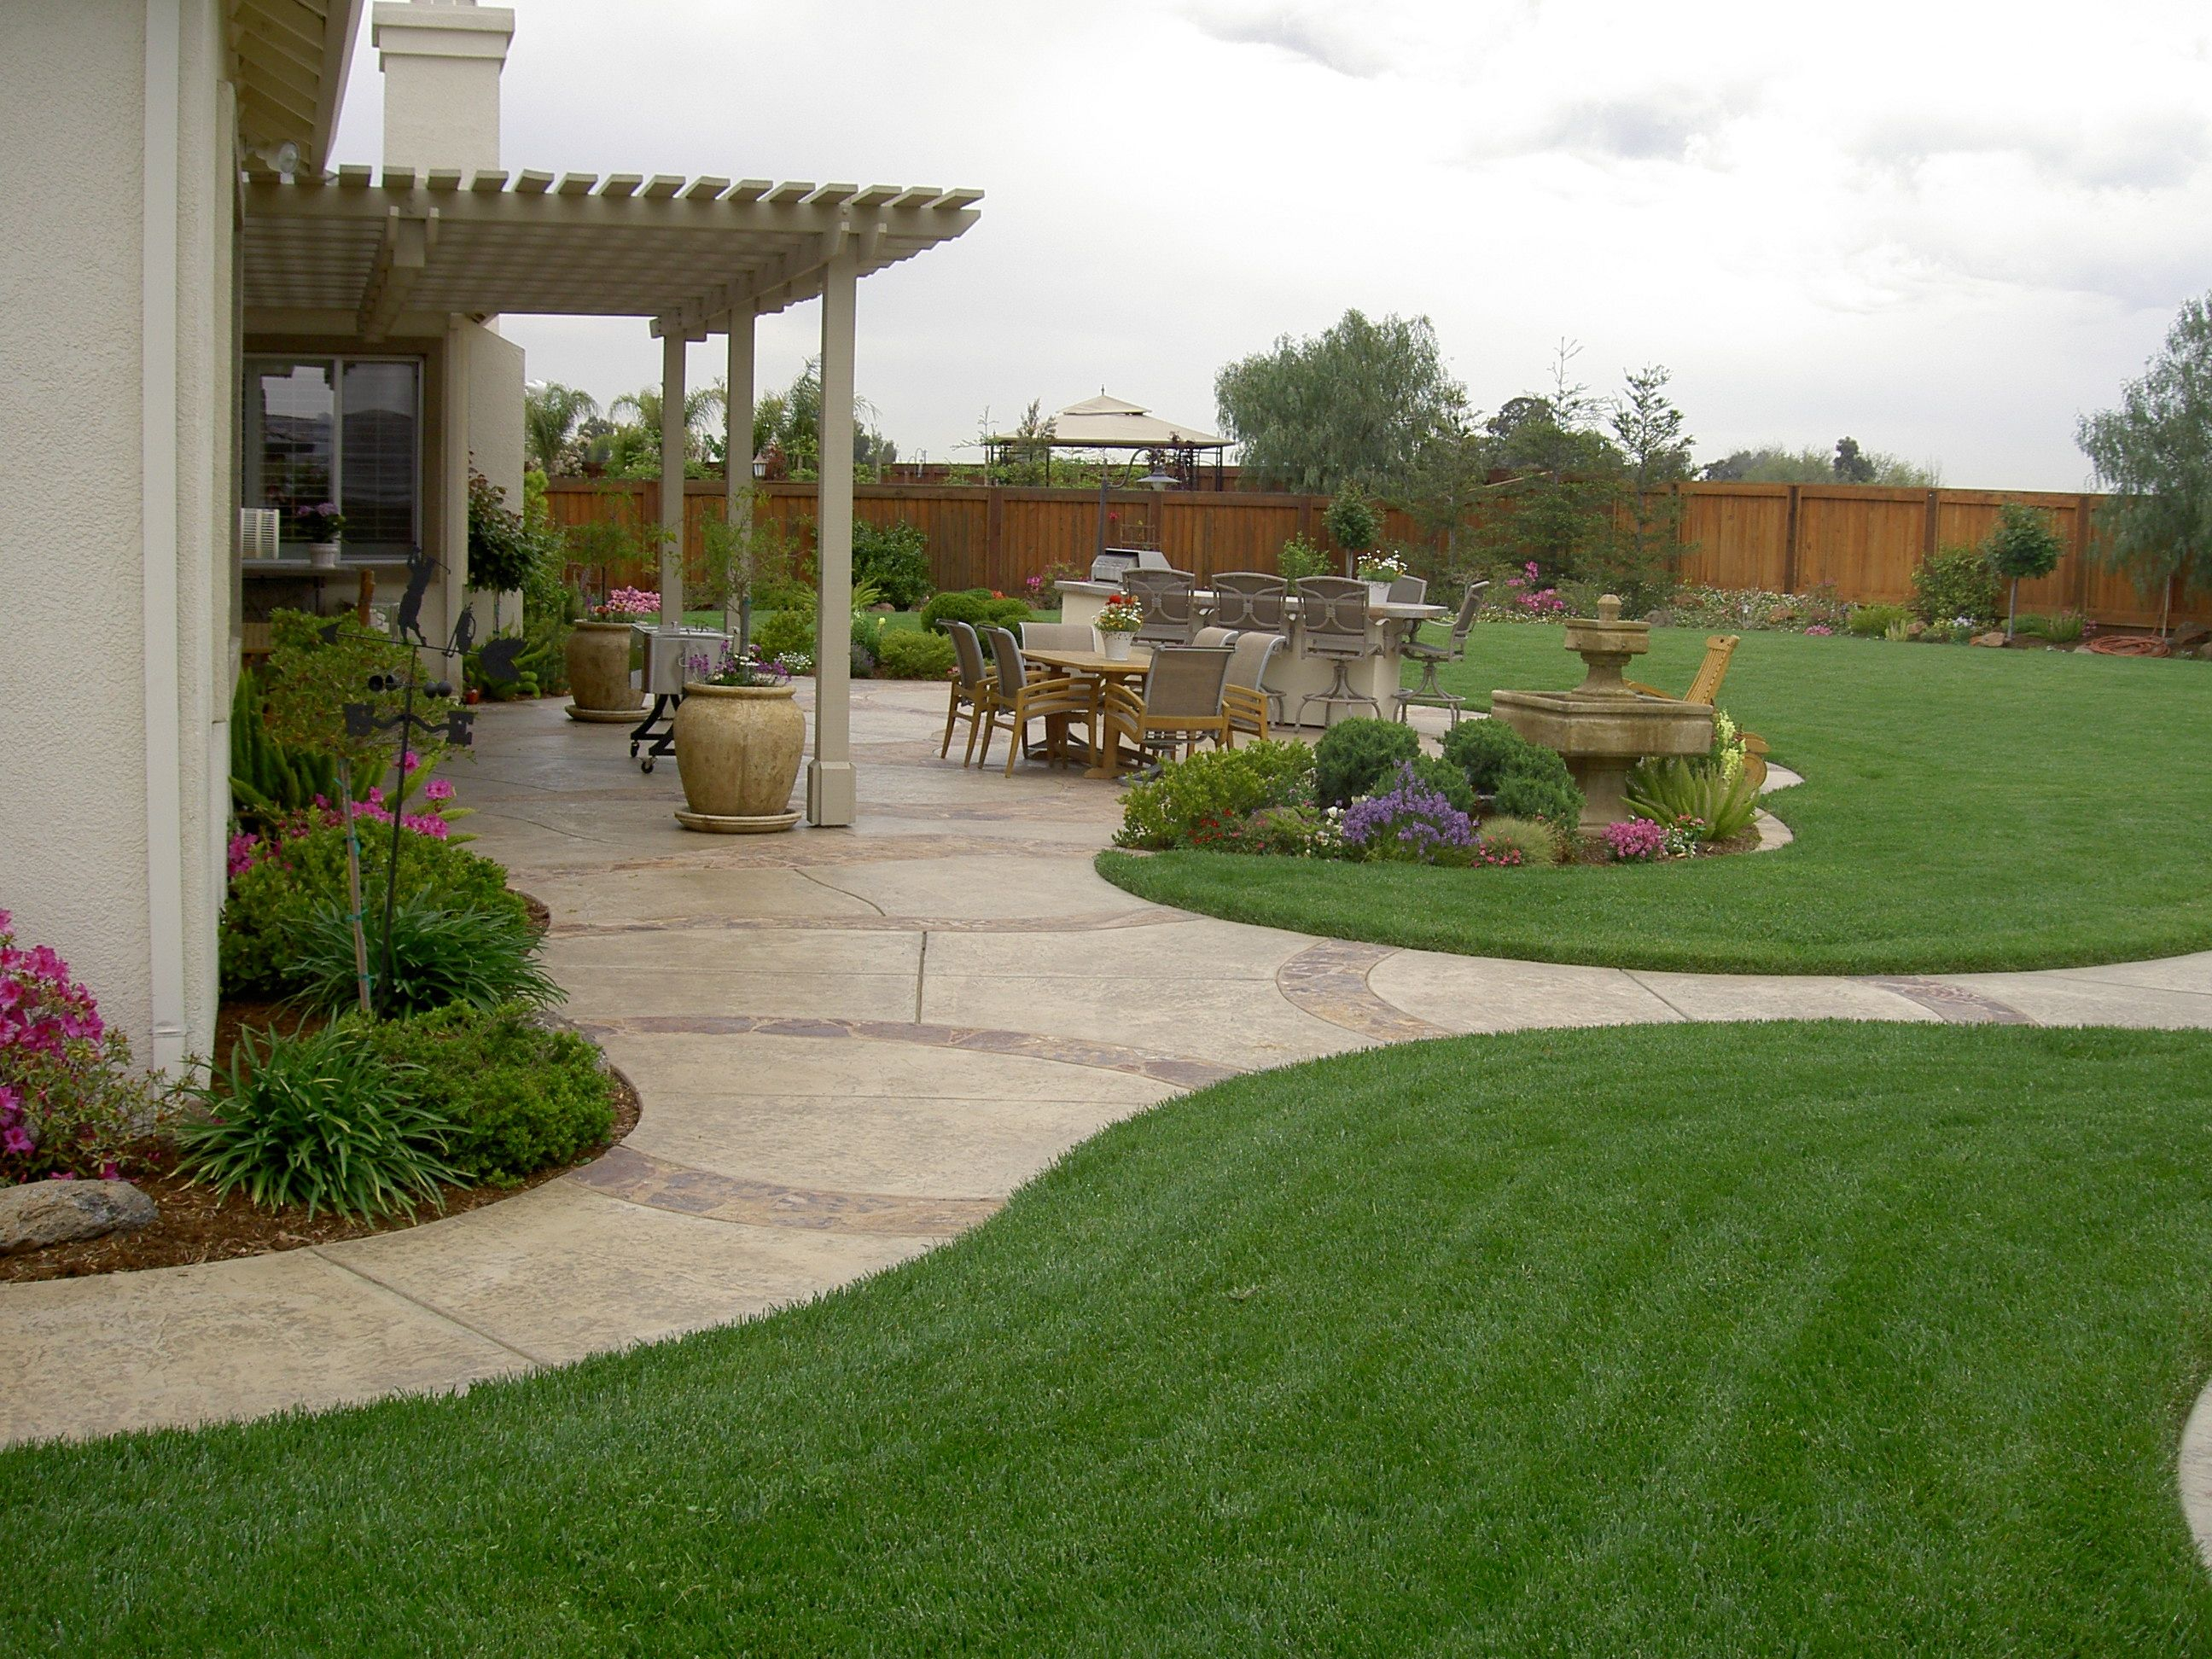 20 Awesome Landscaping Ideas For Your Backyard Gardensoutdoor intended for Backyard Renovation Ideas Pictures